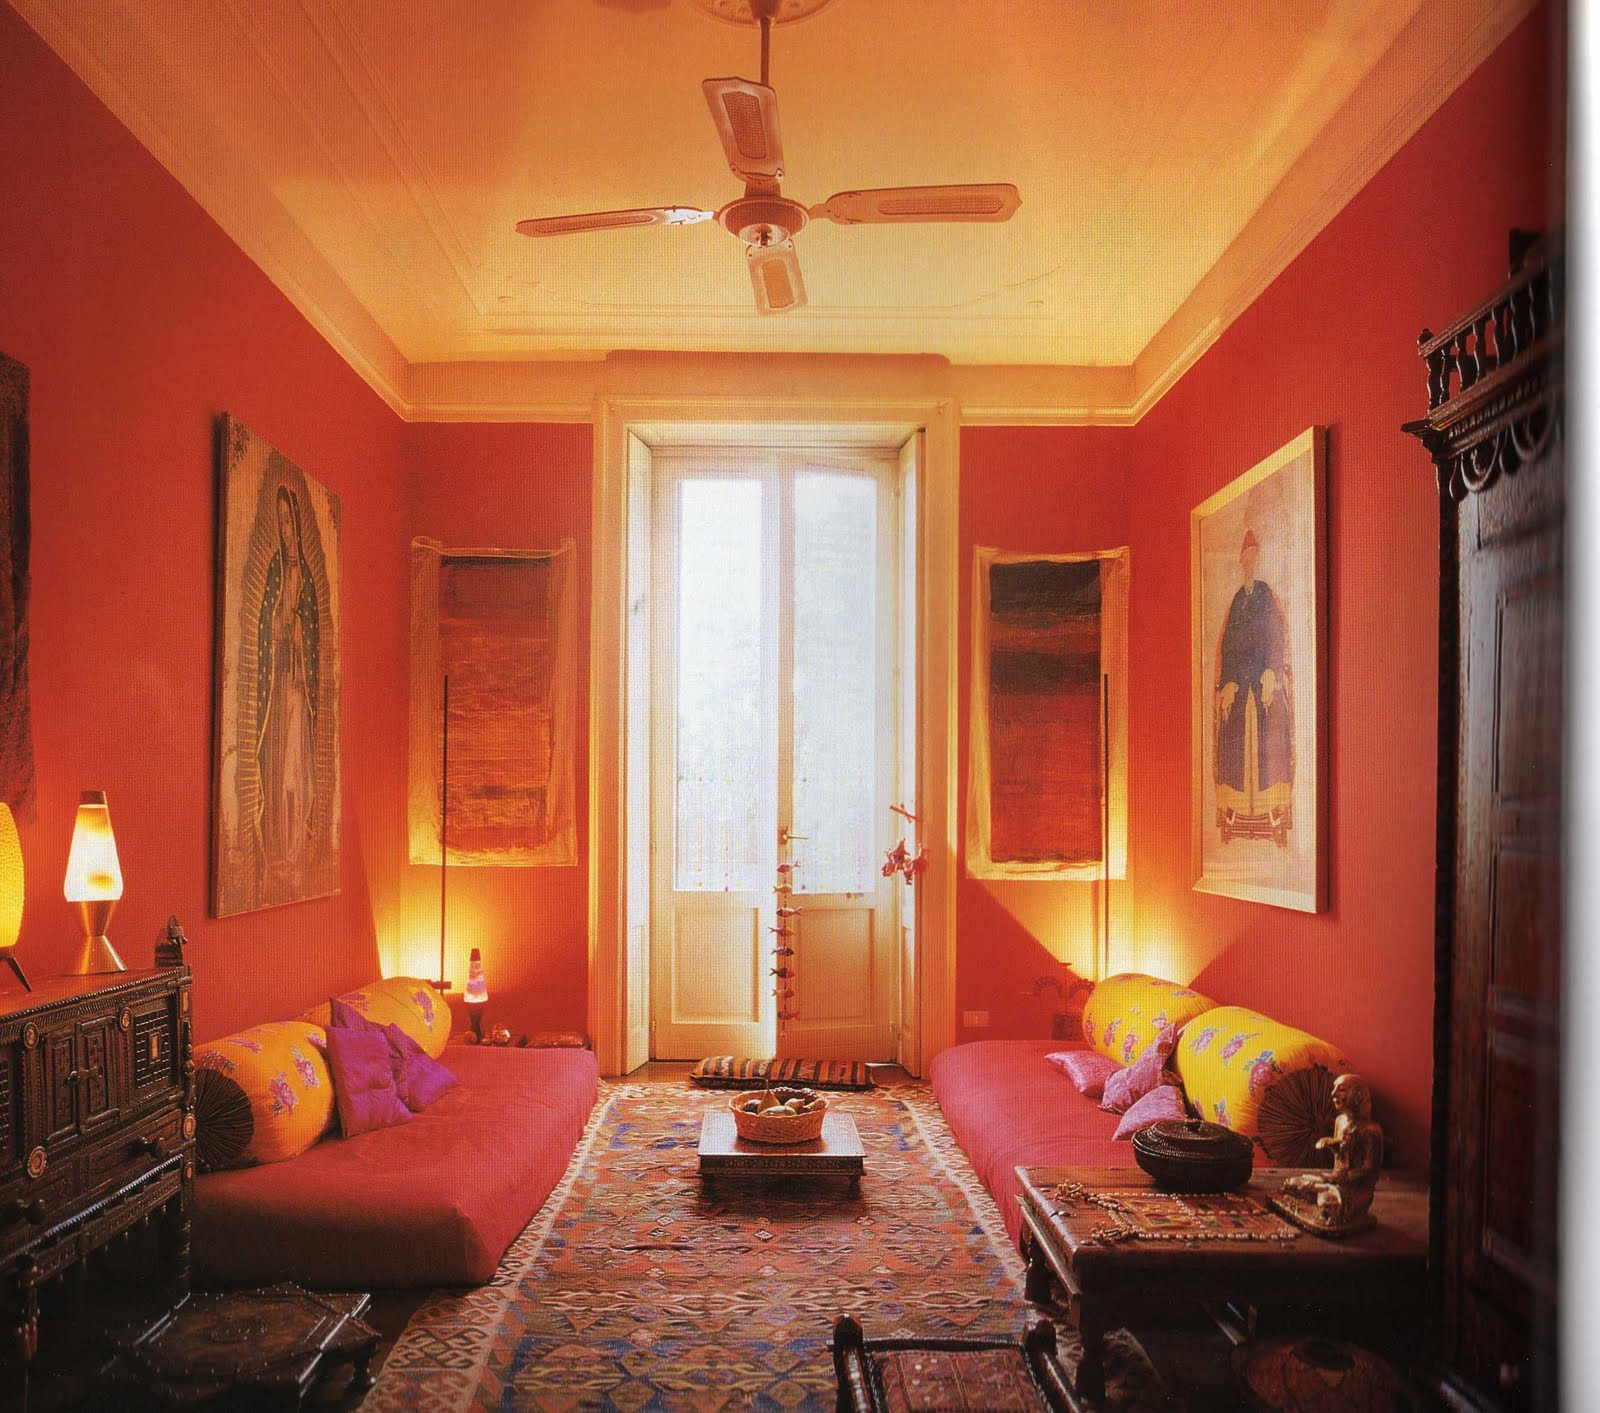 Living Room Flooring India: Saffron And Silk: Indian Style